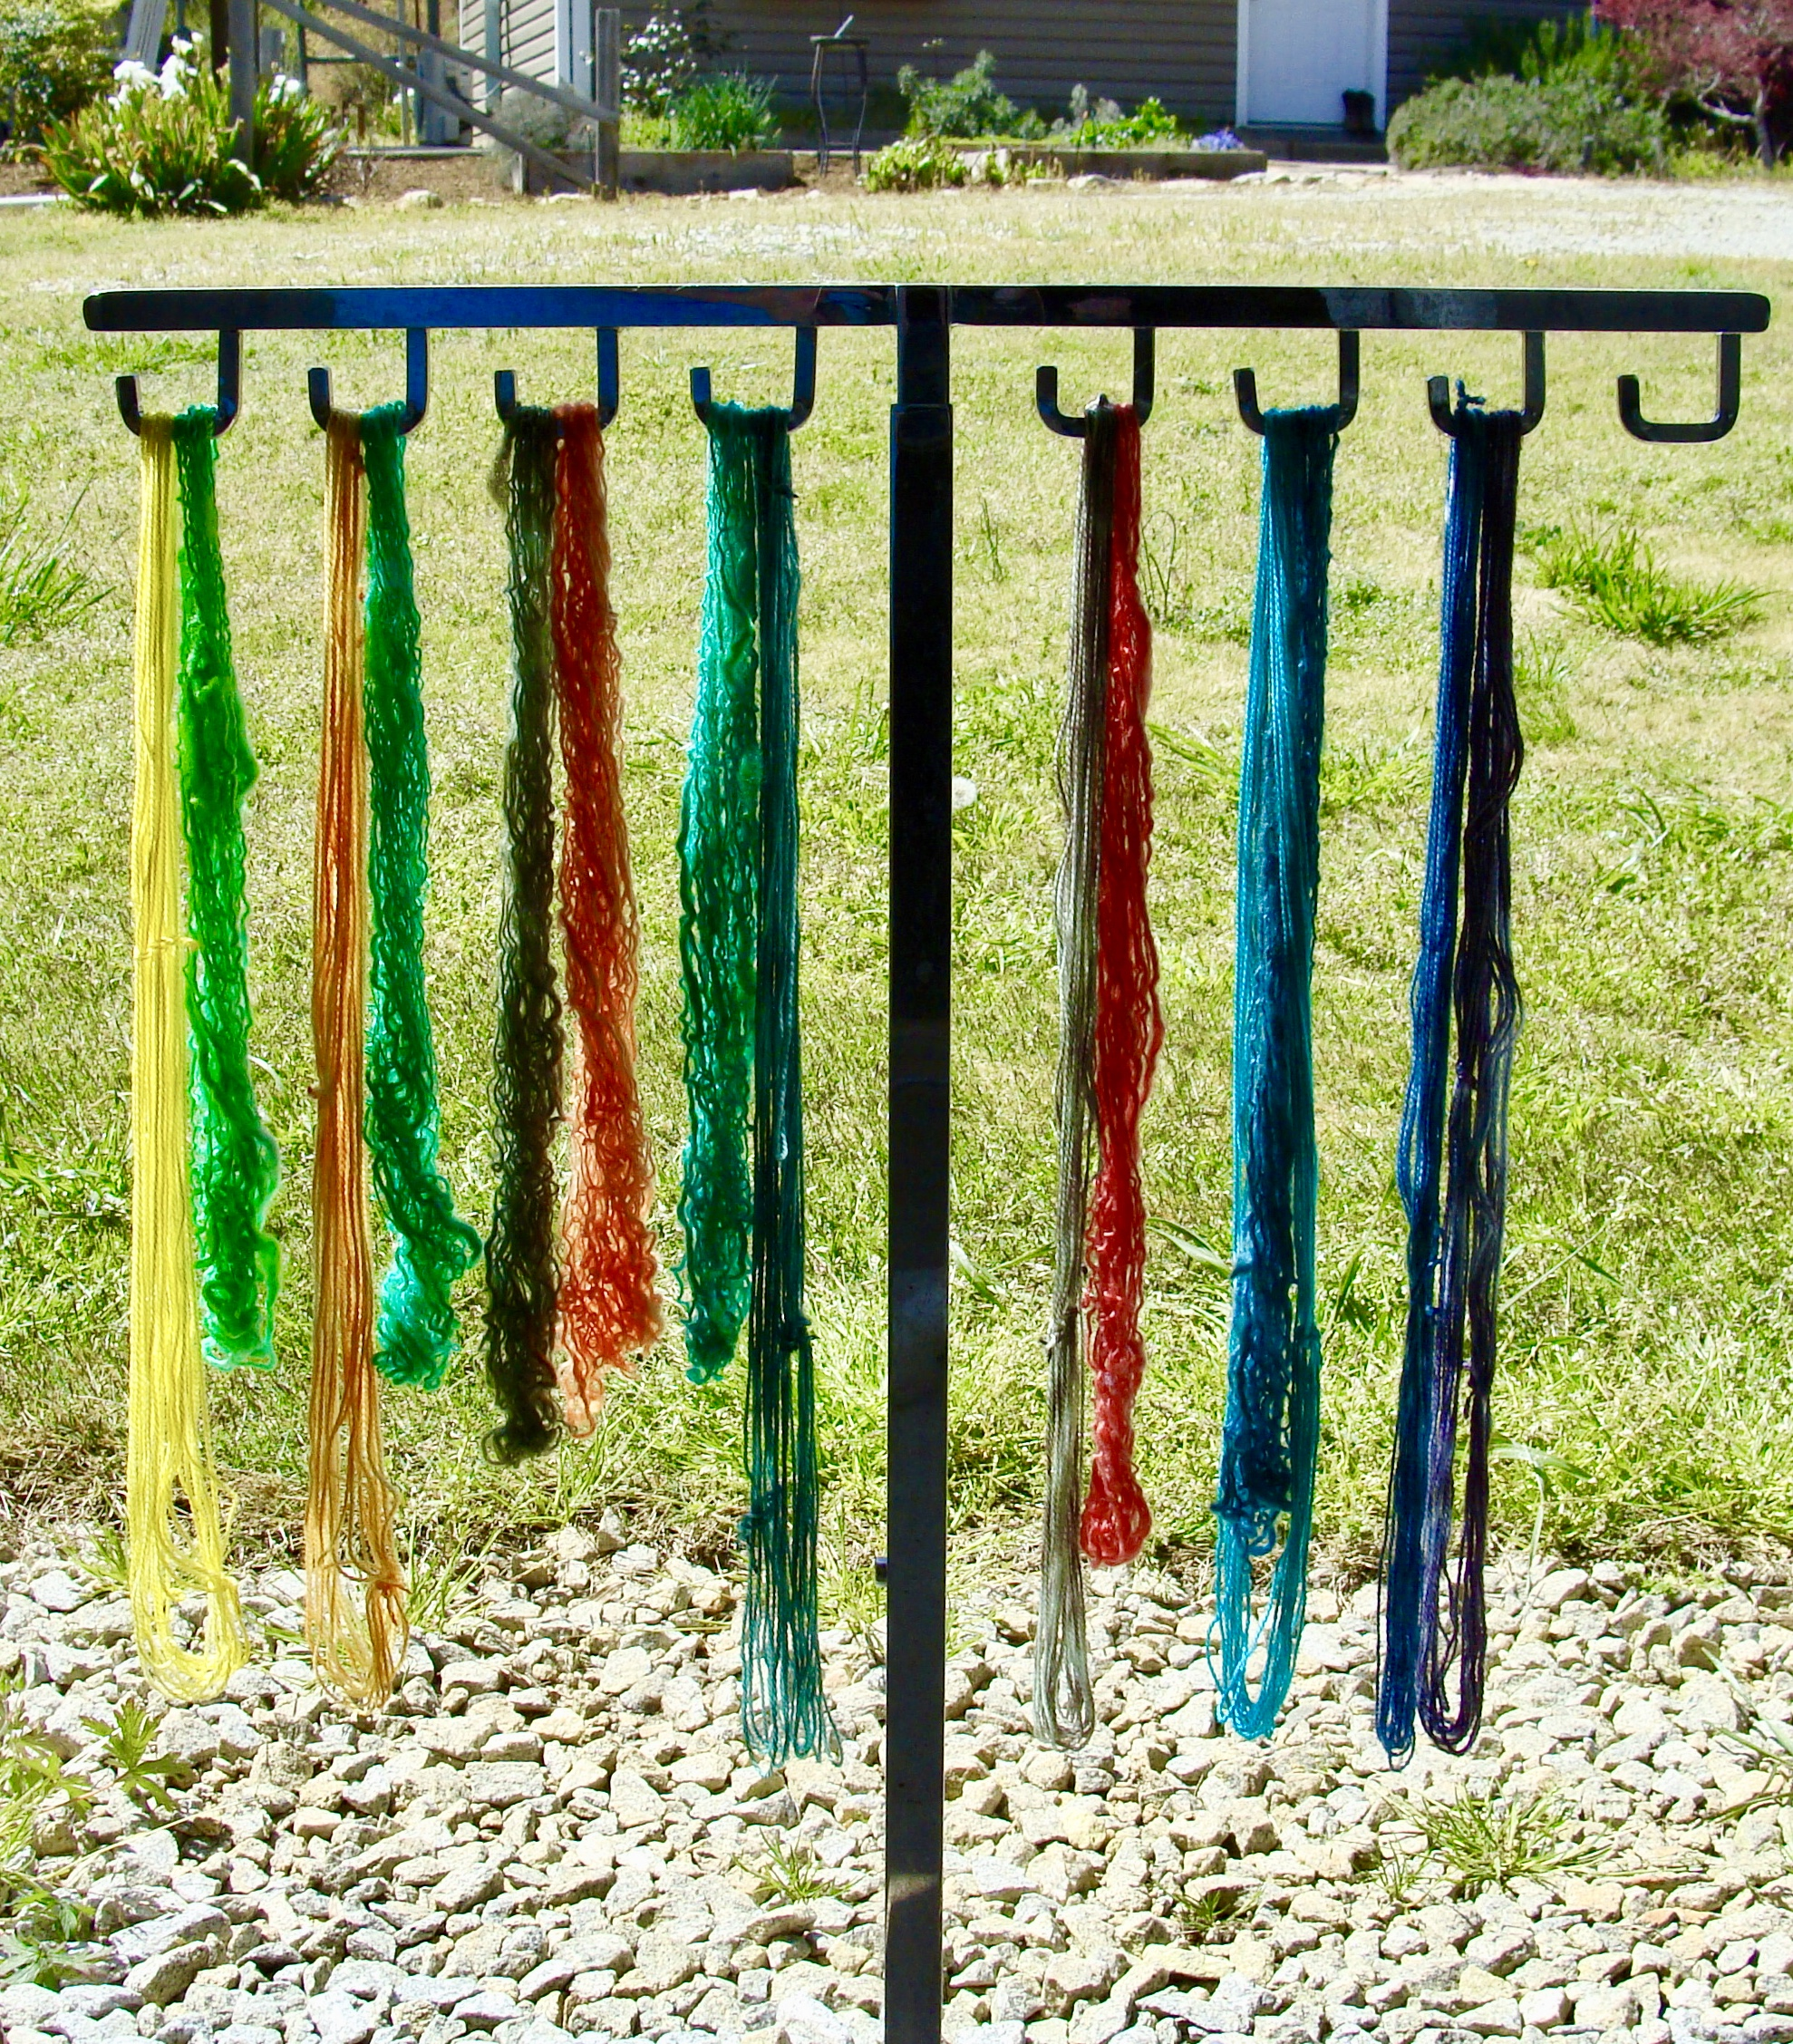 dyed mini skeins drying